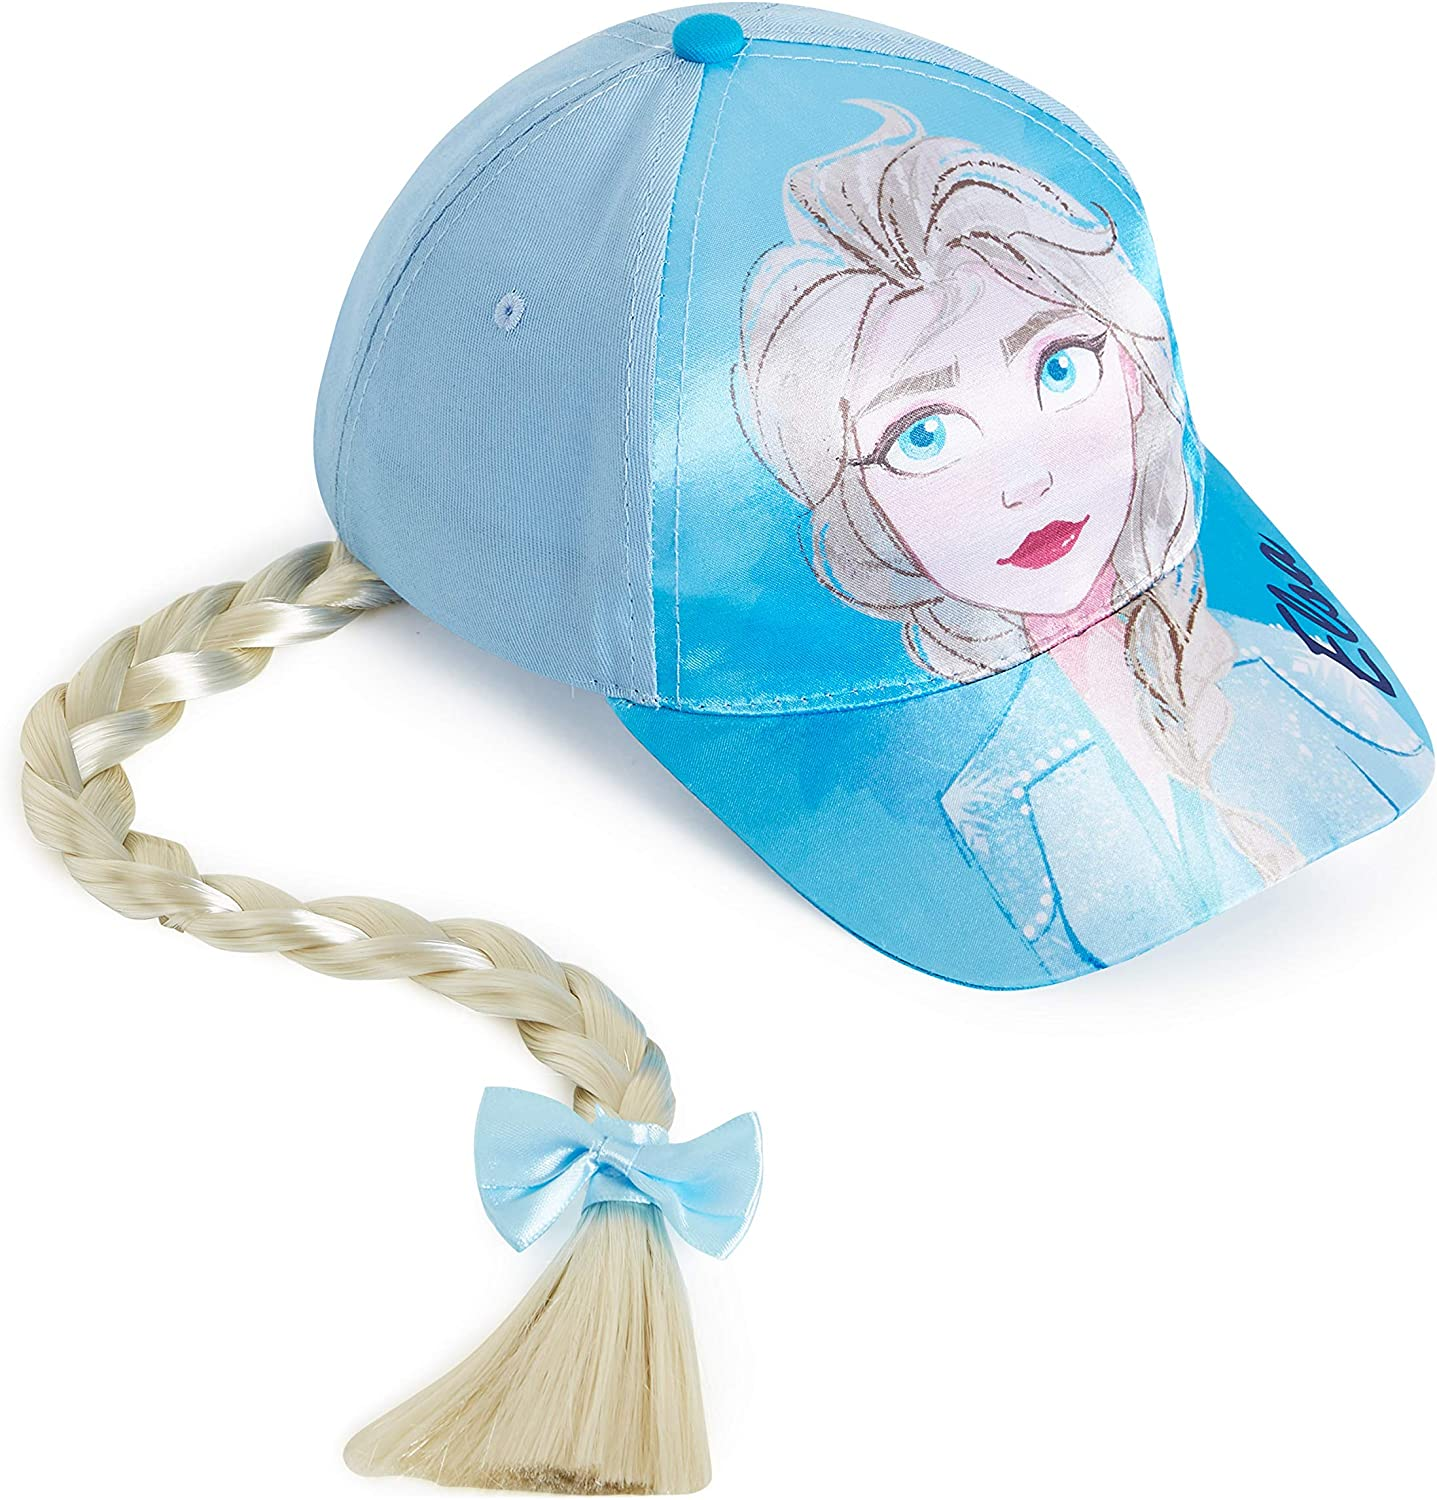 One Size Blue Summer Hat Frozen Gifts for Girls Teenagers Hair Accessories for Girls Girls Sun Hat with Braid and Print of Disney Princess Elsa Disney Frozen 2 Baseball Cap